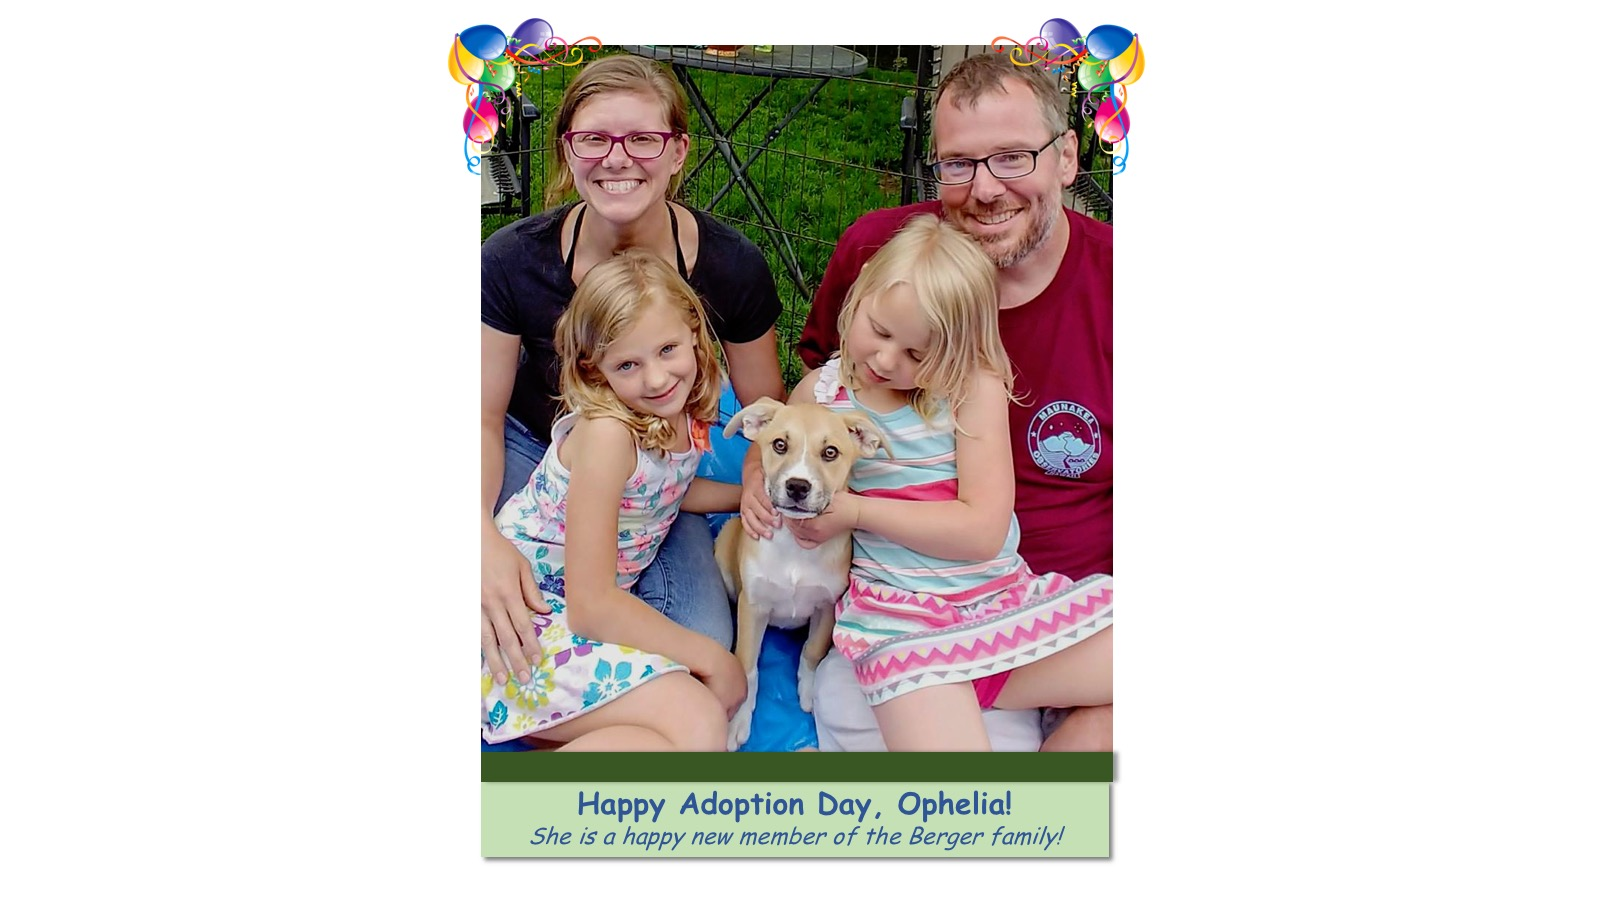 Ophelia_Adoption_Photo_2018.jpg